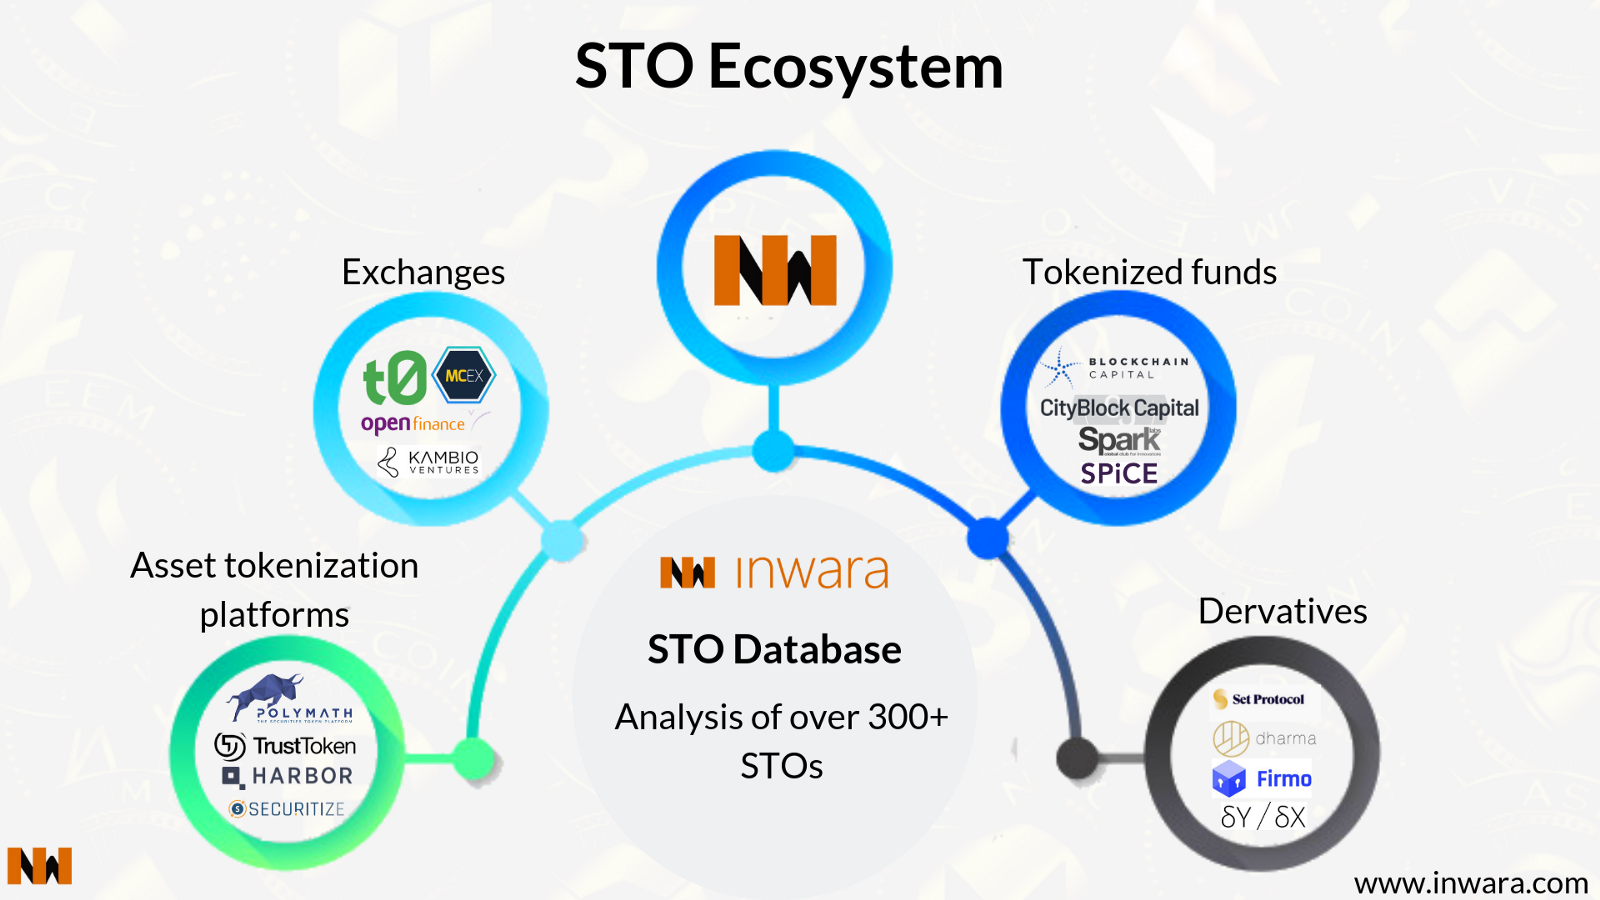 /will-2019-be-the-year-of-the-sto-understanding-stos-security-tokens-market-potential-over-icos-4d2502227220 feature image